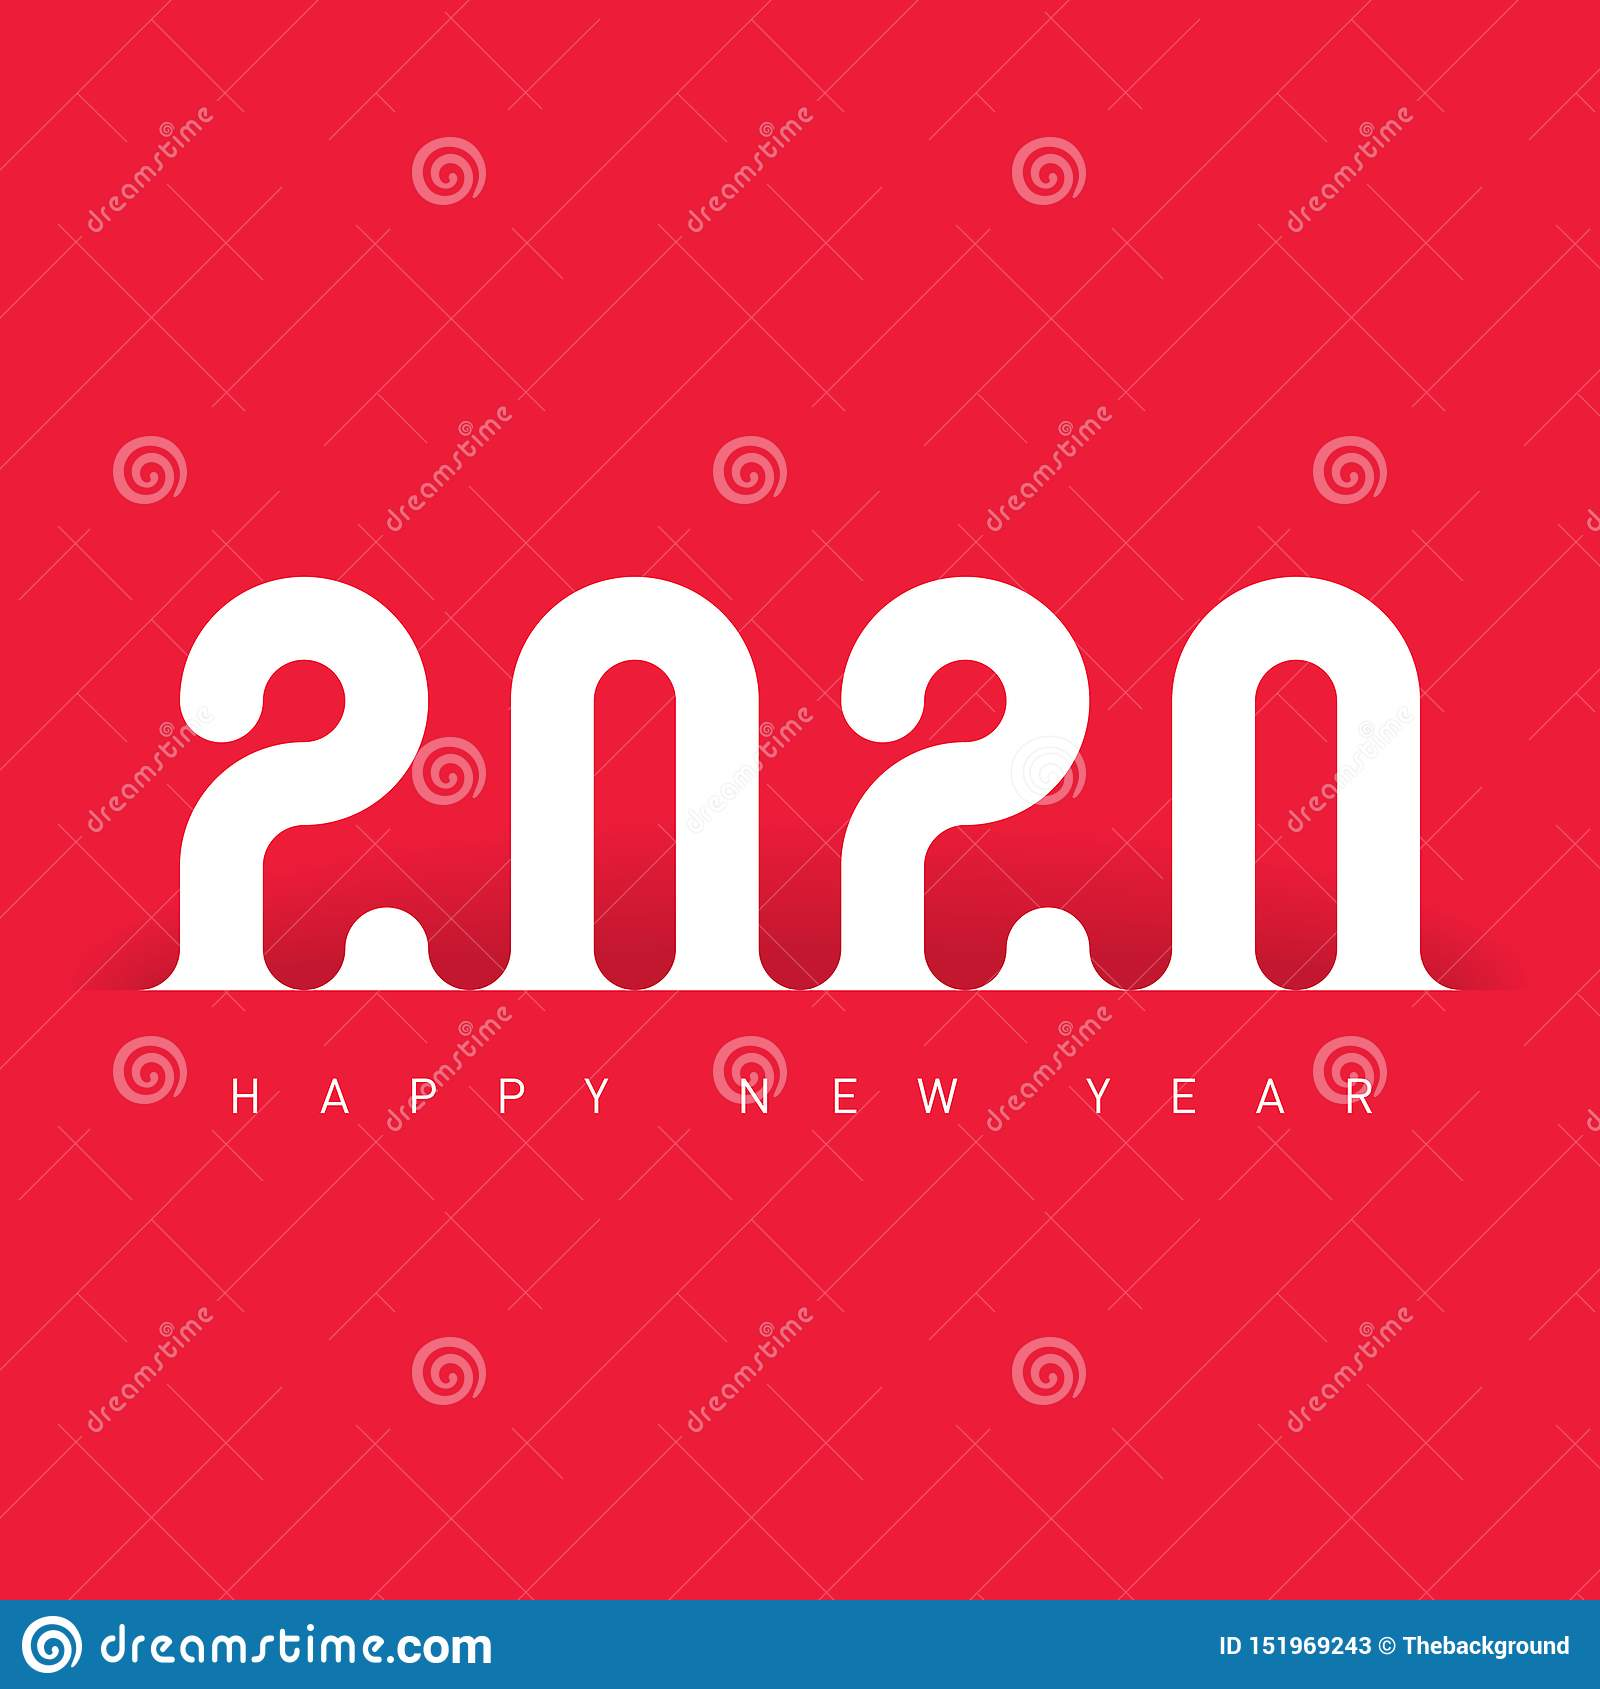 Happy New Year 2020. Greeting Card Or Calendar Design ...